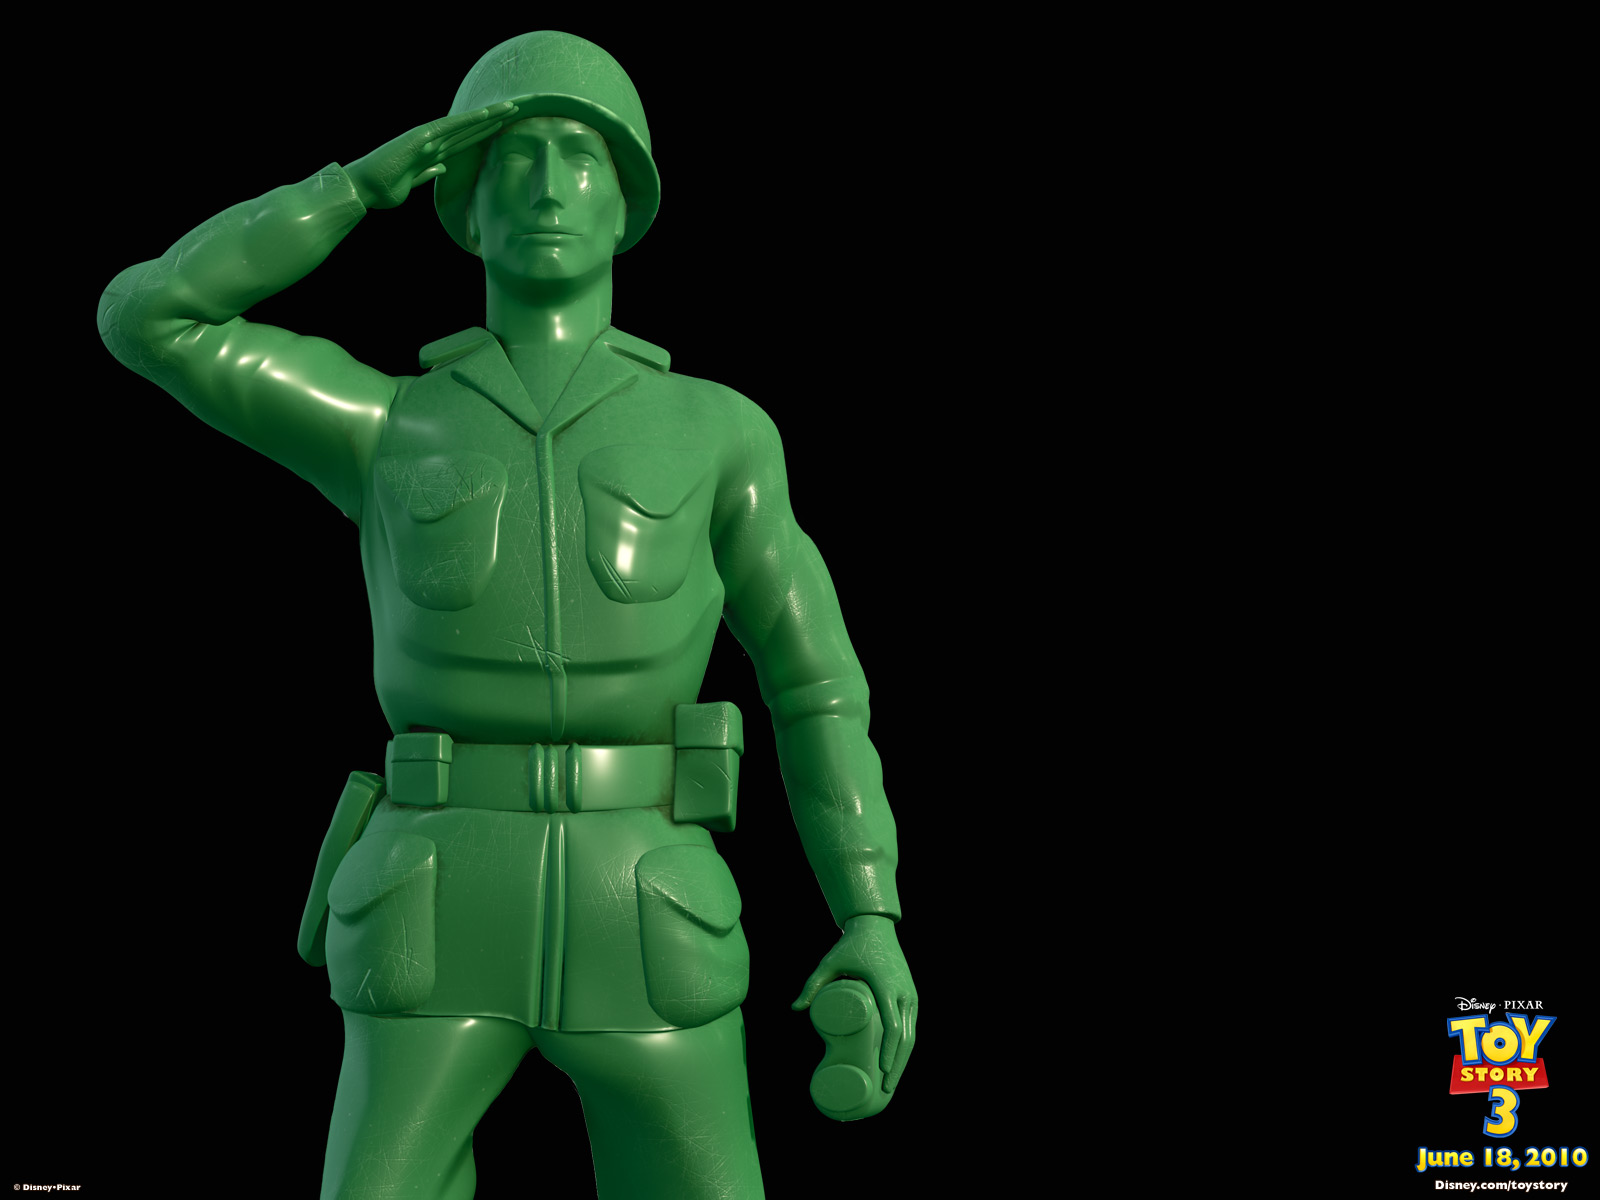 Sarge Green Army Man From Toy Story Wallpaper   Click Picture For High